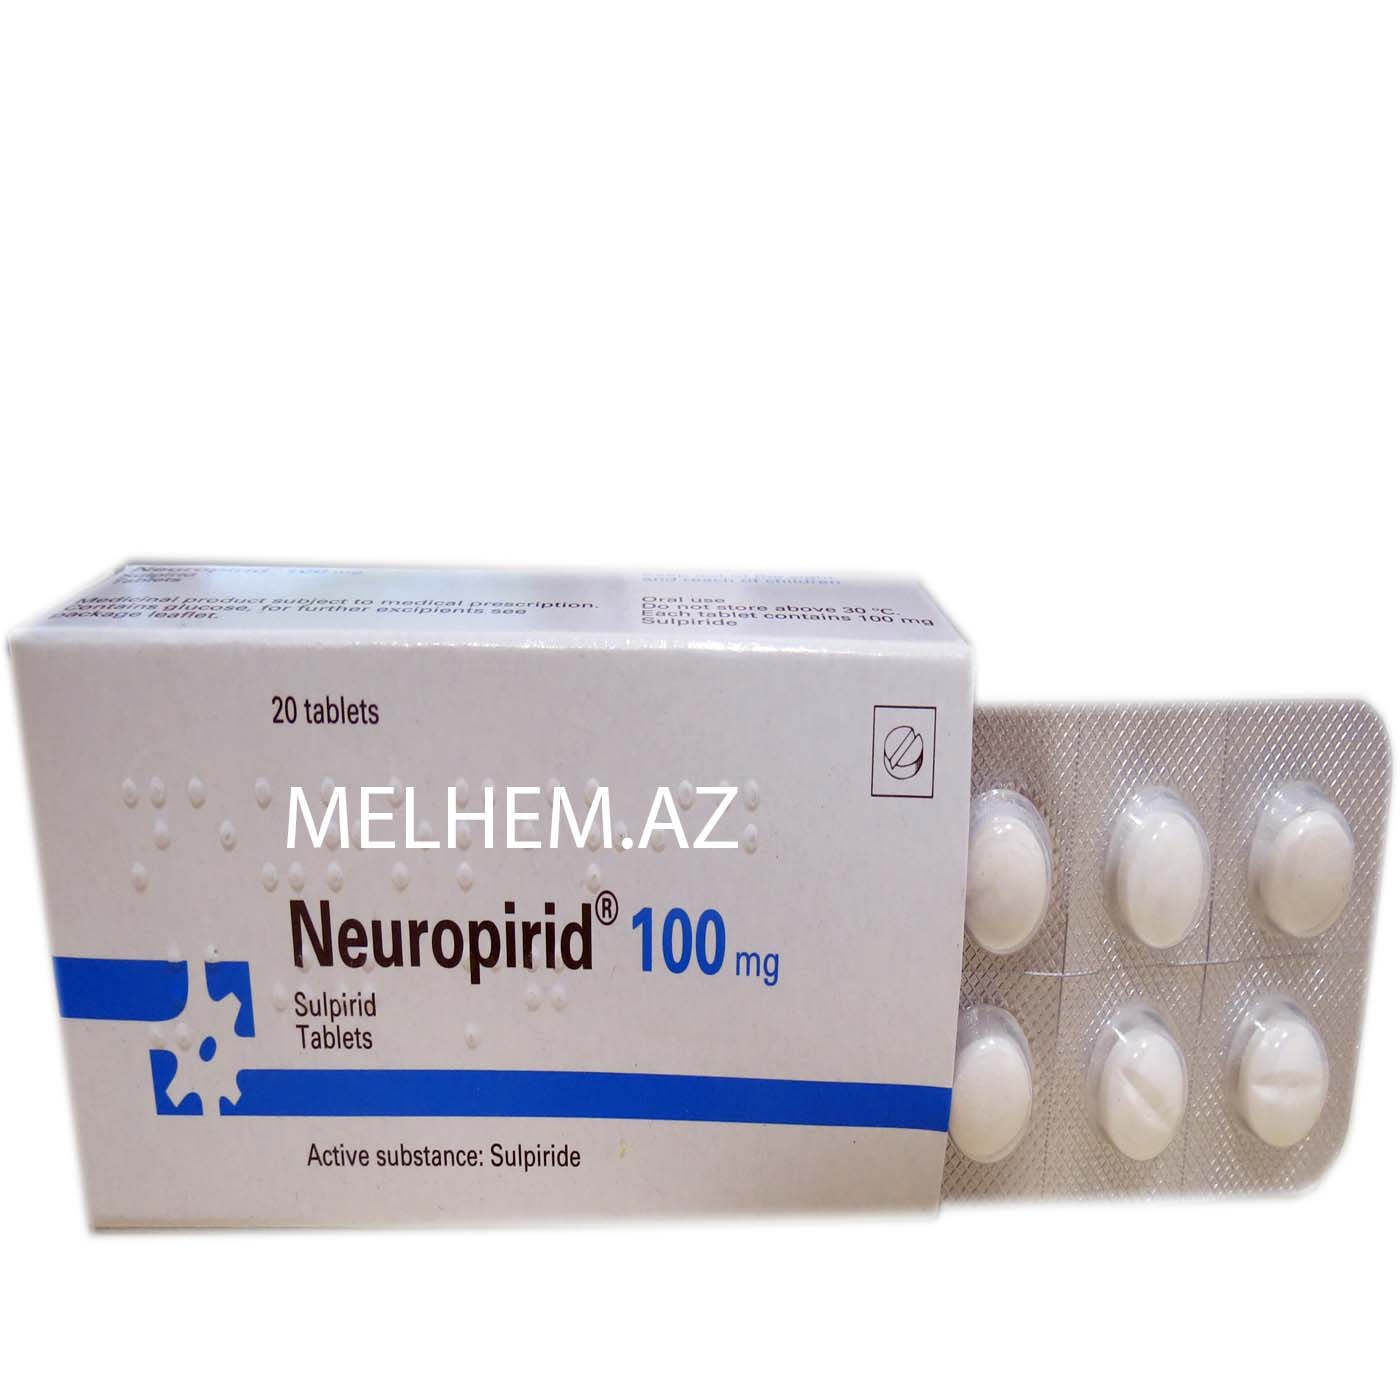 NEUROPİRİD 100 MG